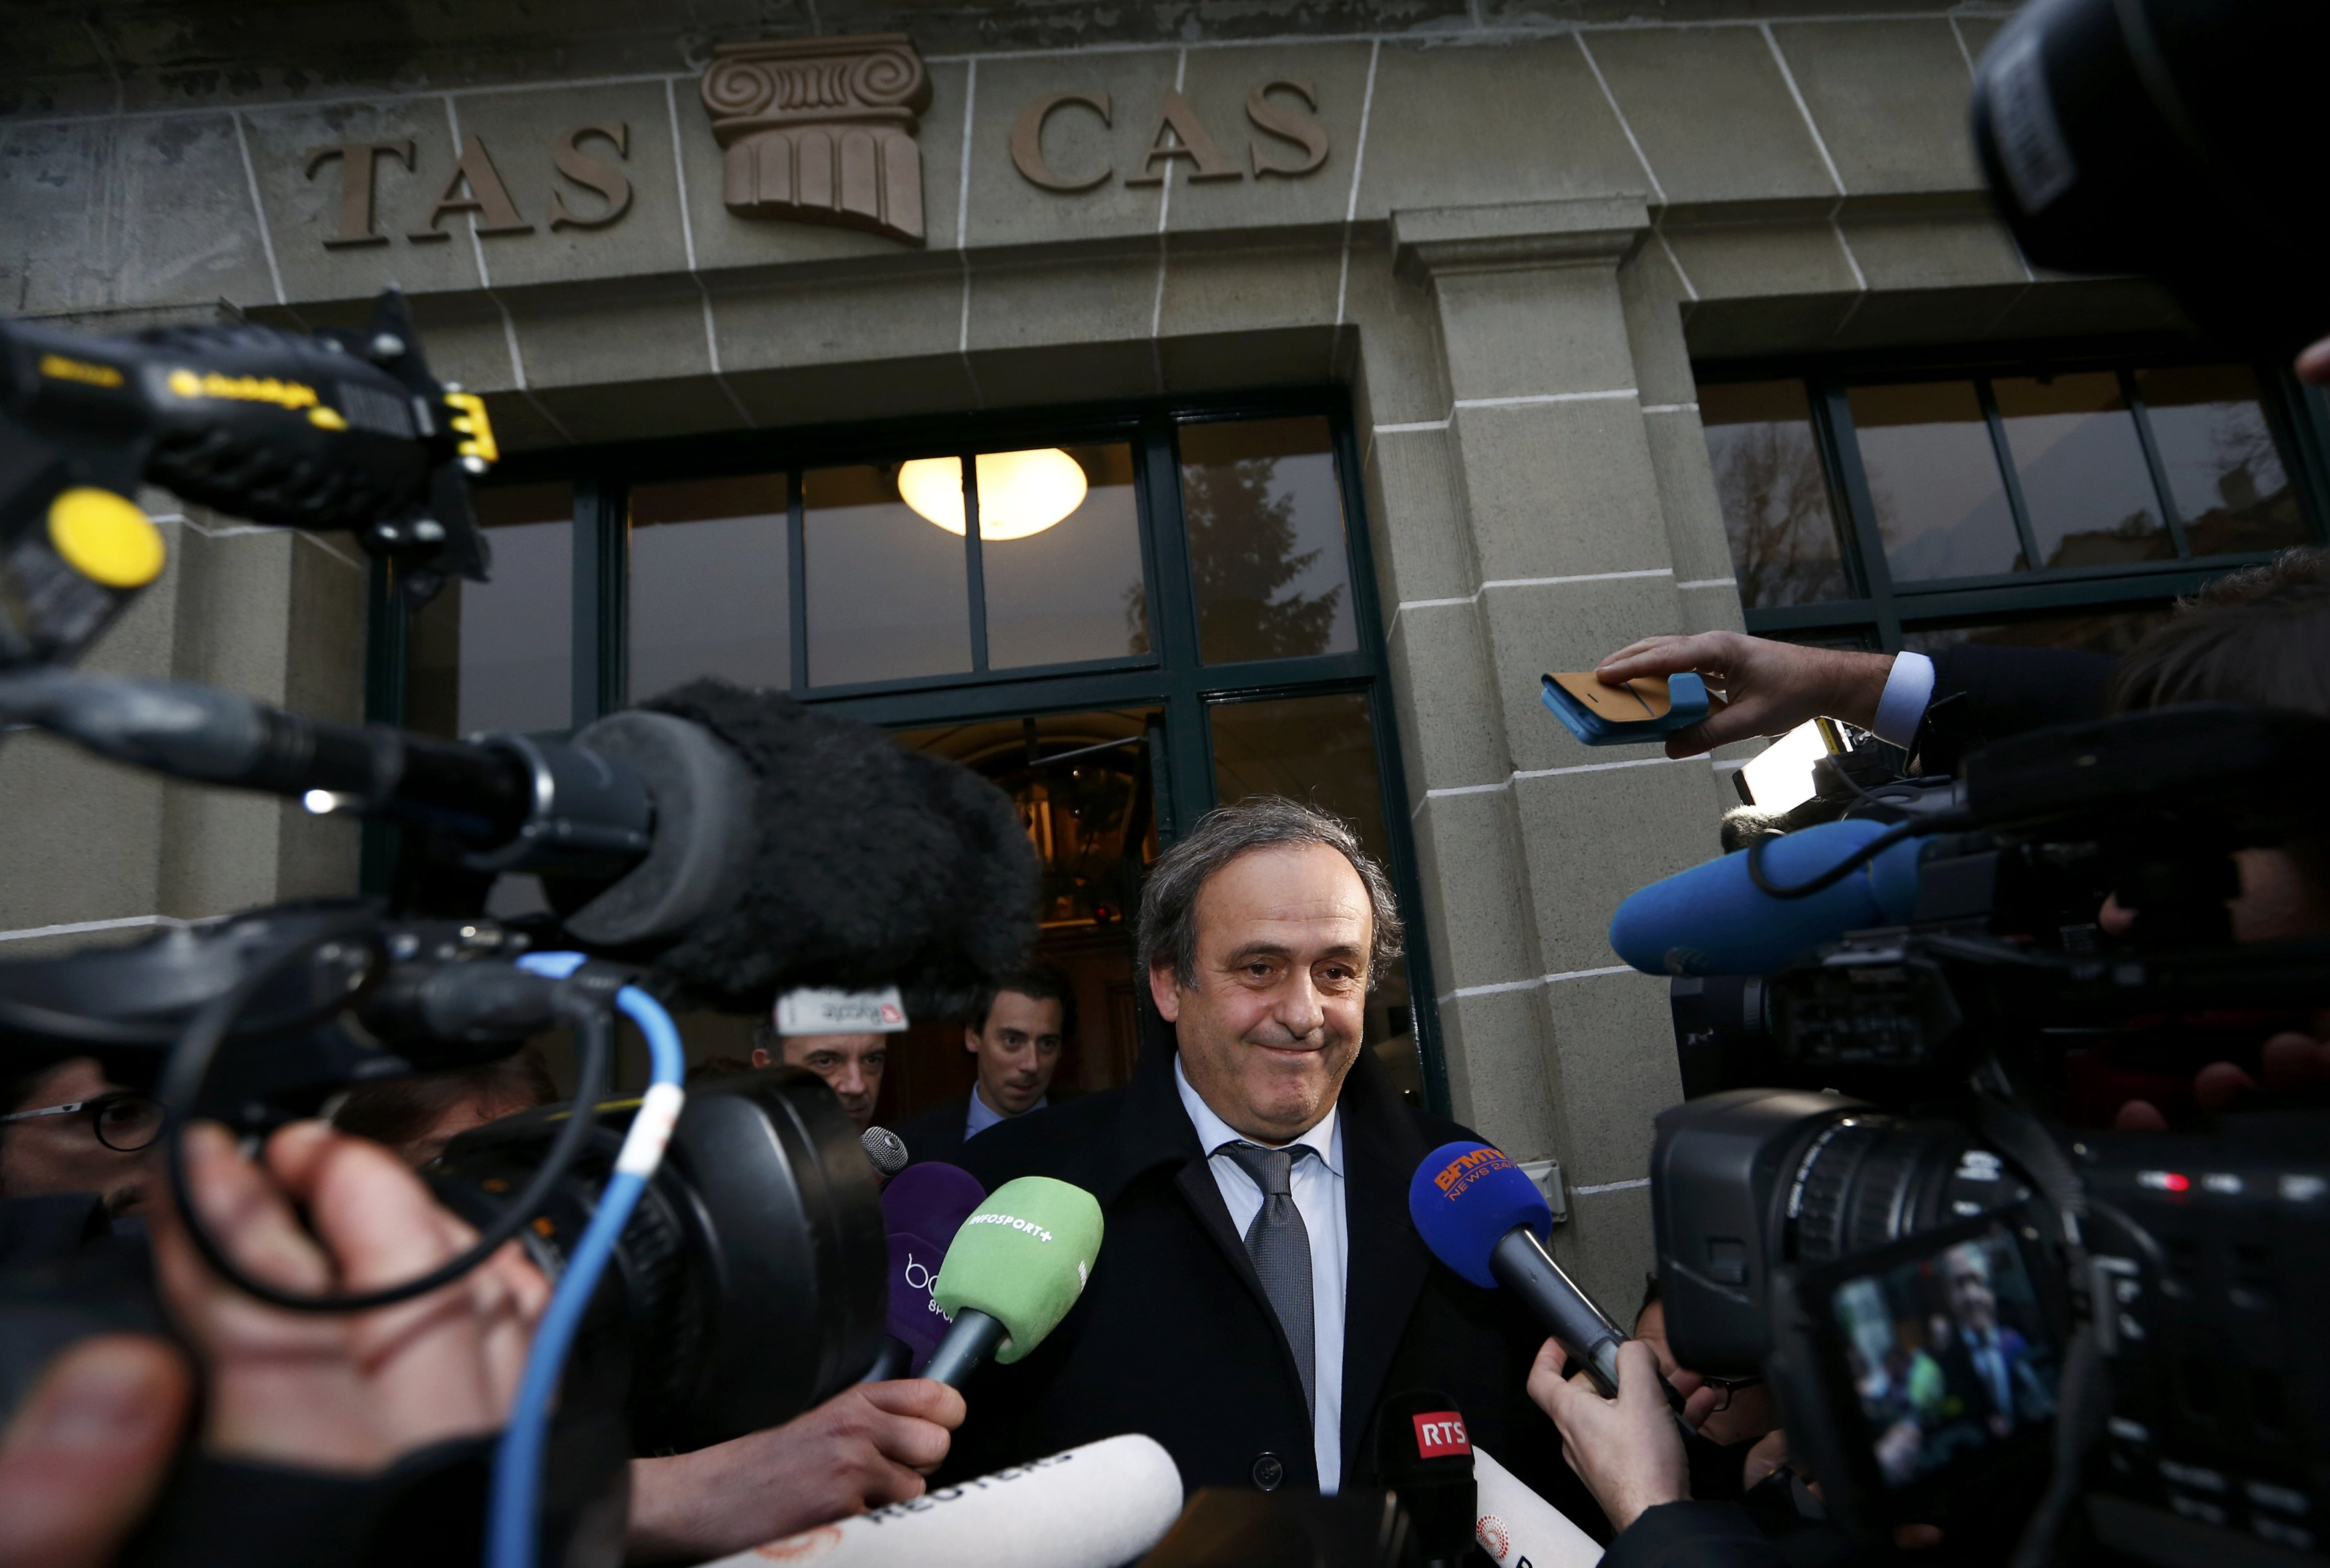 UEFA President Michel Platini leaves after a hearing at the Court of Arbitration for Sport (CAS) in Lausanne, Switzerland December 8, 2015. Photo: Reuters